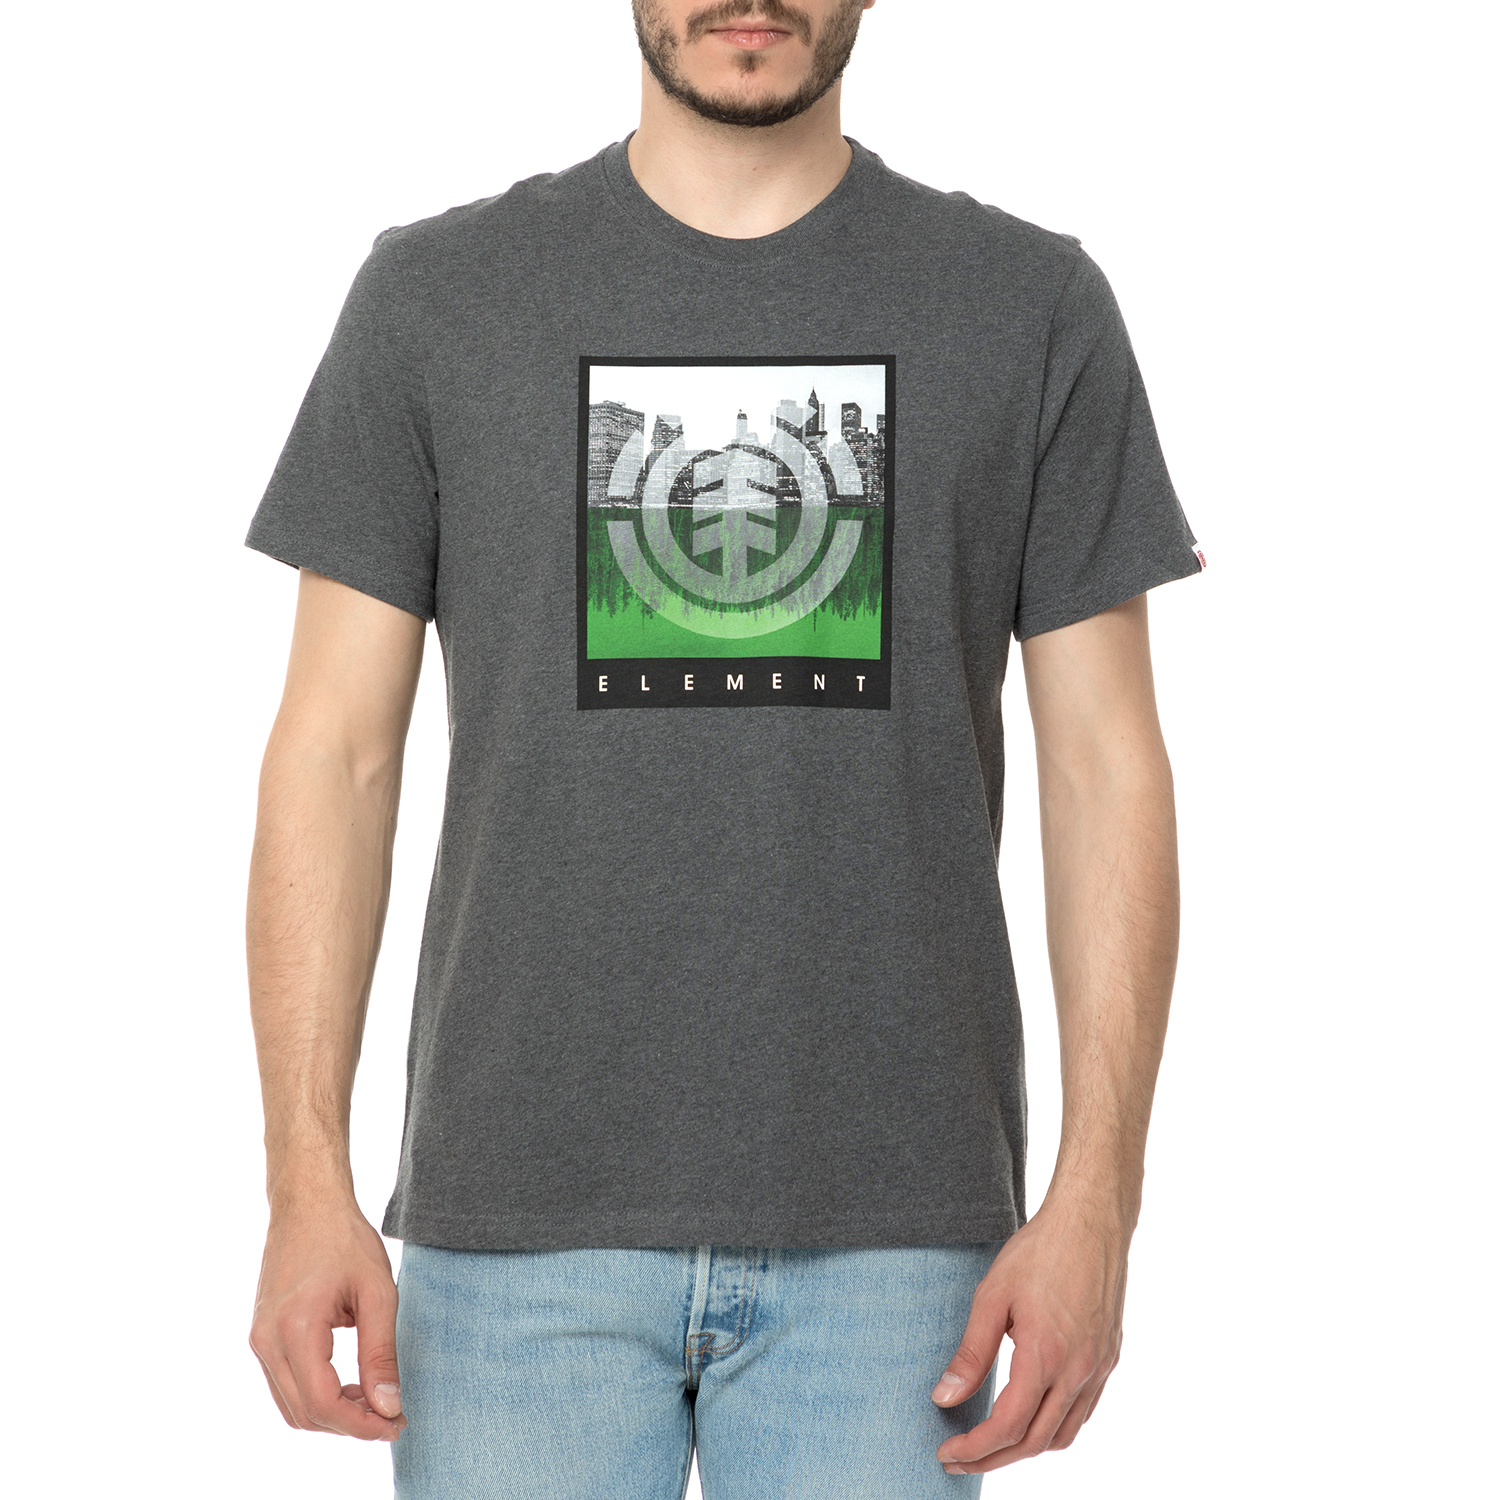 e755ce180dc9 ELEMENT – Ανδρικό t-shirt ELEMENT REFLECTION γκρι με στάμα – Online ...